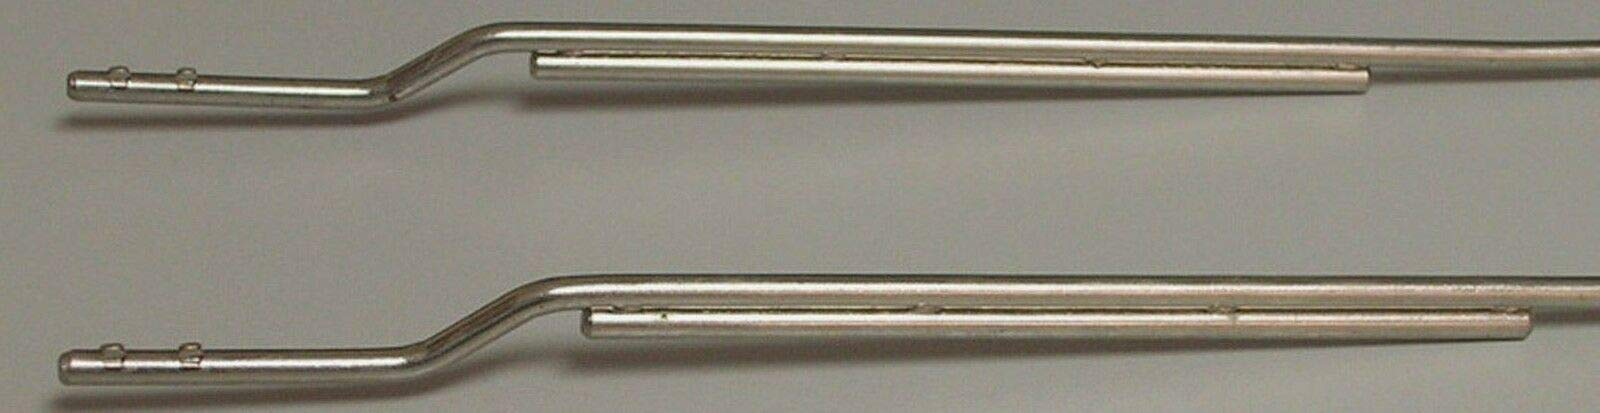 Heavy Duty Extension Rails for All Standard Brother/Knitking Knitting Machine